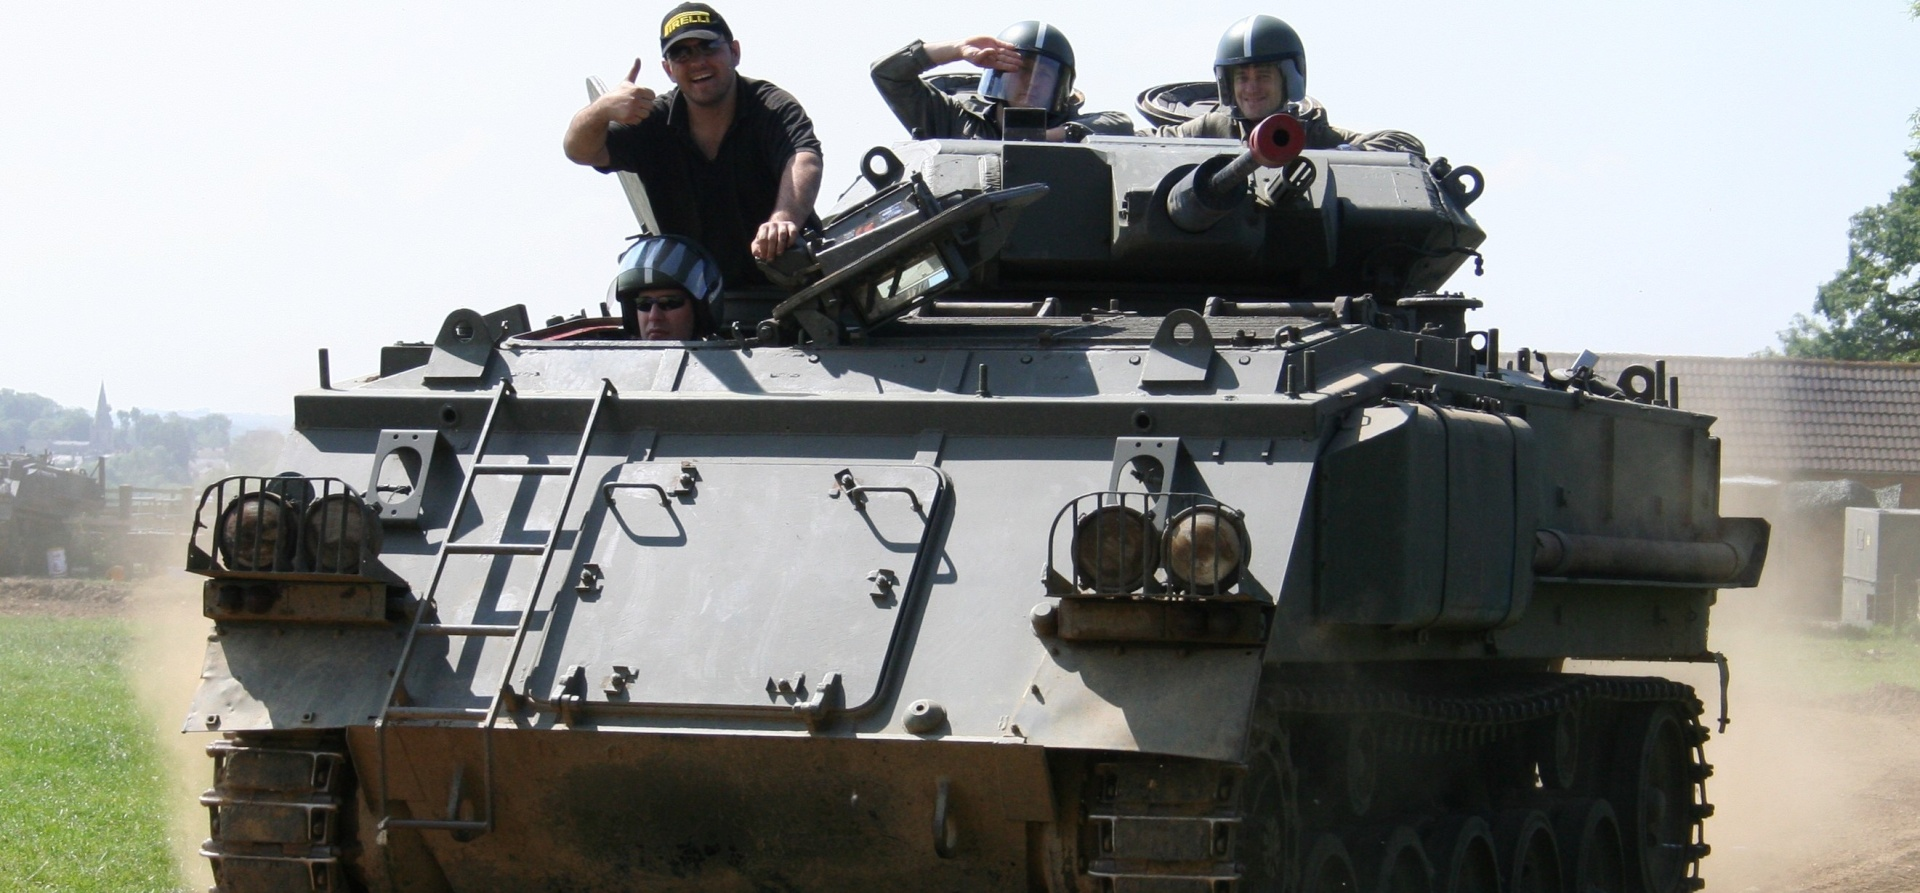 Tank Driving Experience Leicestershire